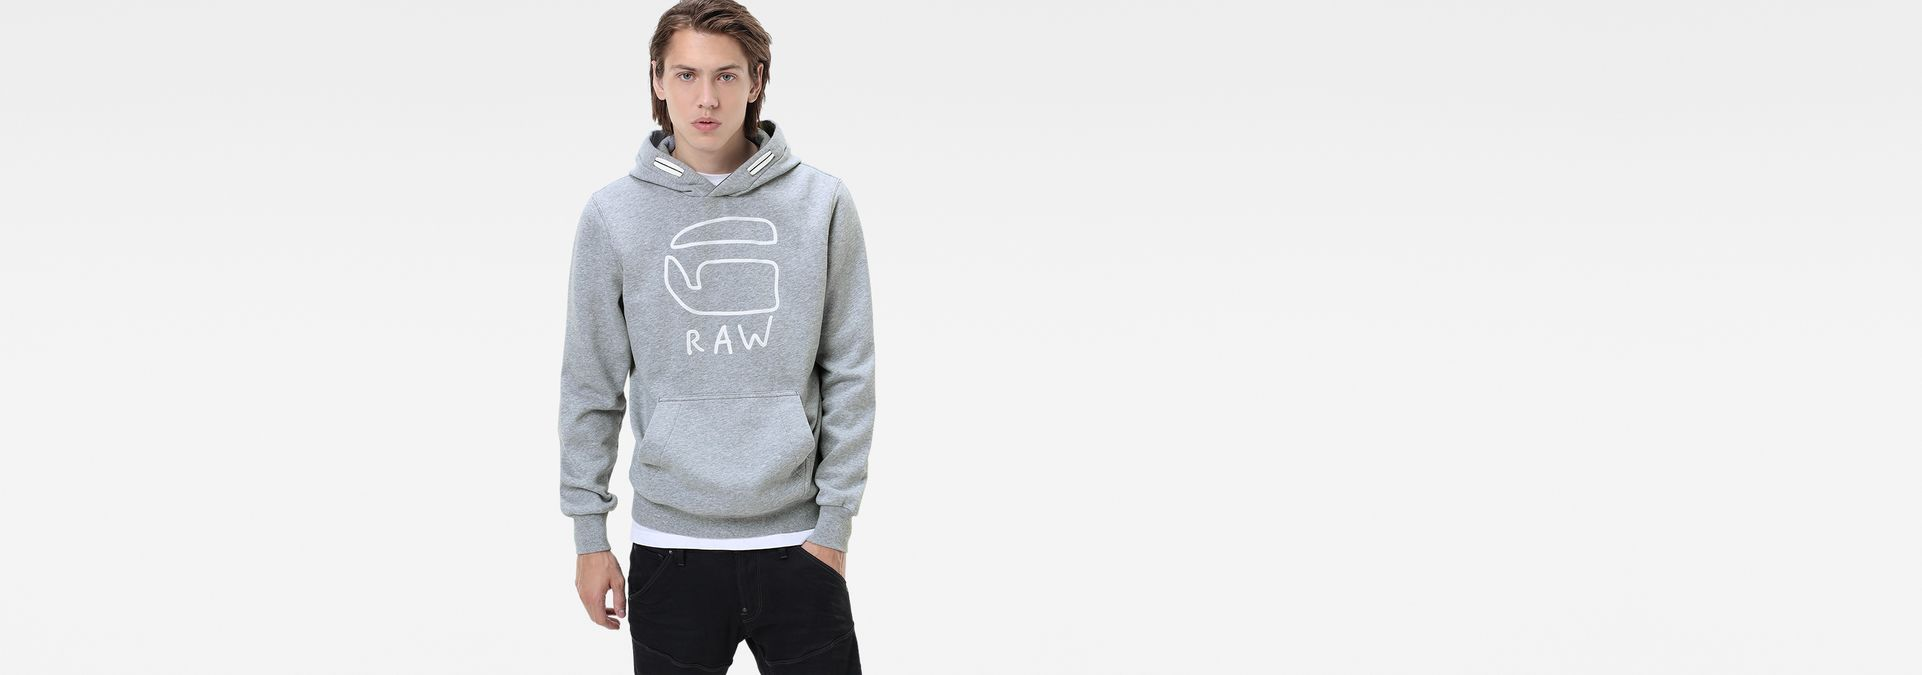 okisi hooded sweater grey htr men sale g star raw. Black Bedroom Furniture Sets. Home Design Ideas